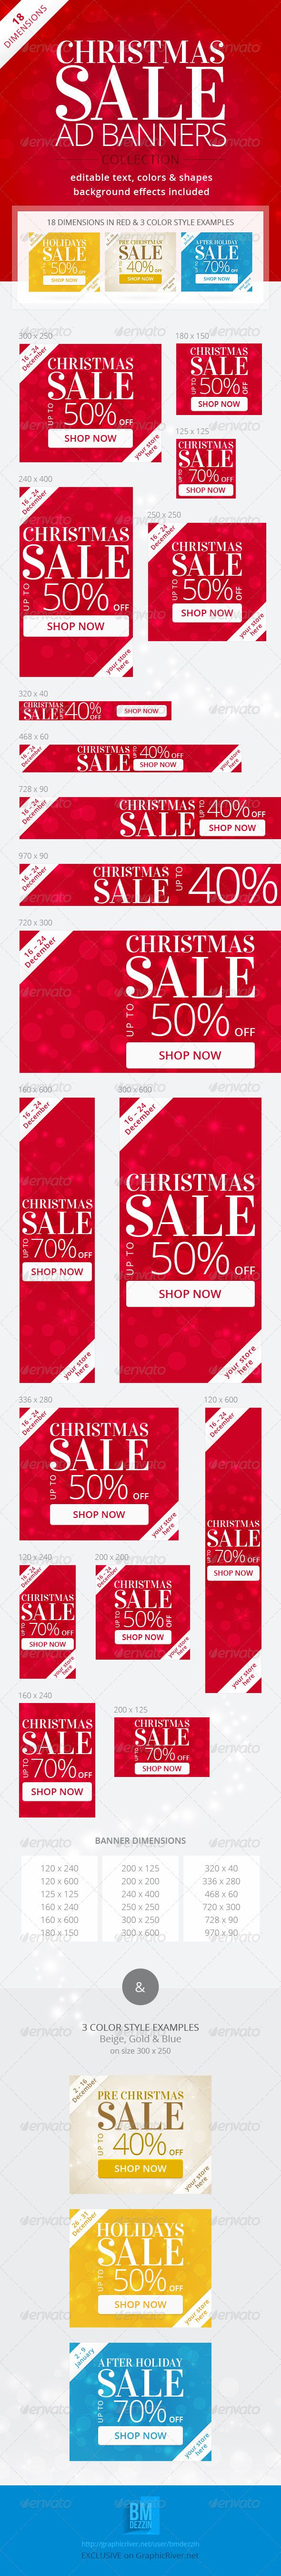 Web banners, banner designs, banner designer  Sandy Rowley favorites.  Beautiful banner design. Call anytime 775 453 6120. www.renowebdesigner.com  Christmas Sale Web Ad Banners